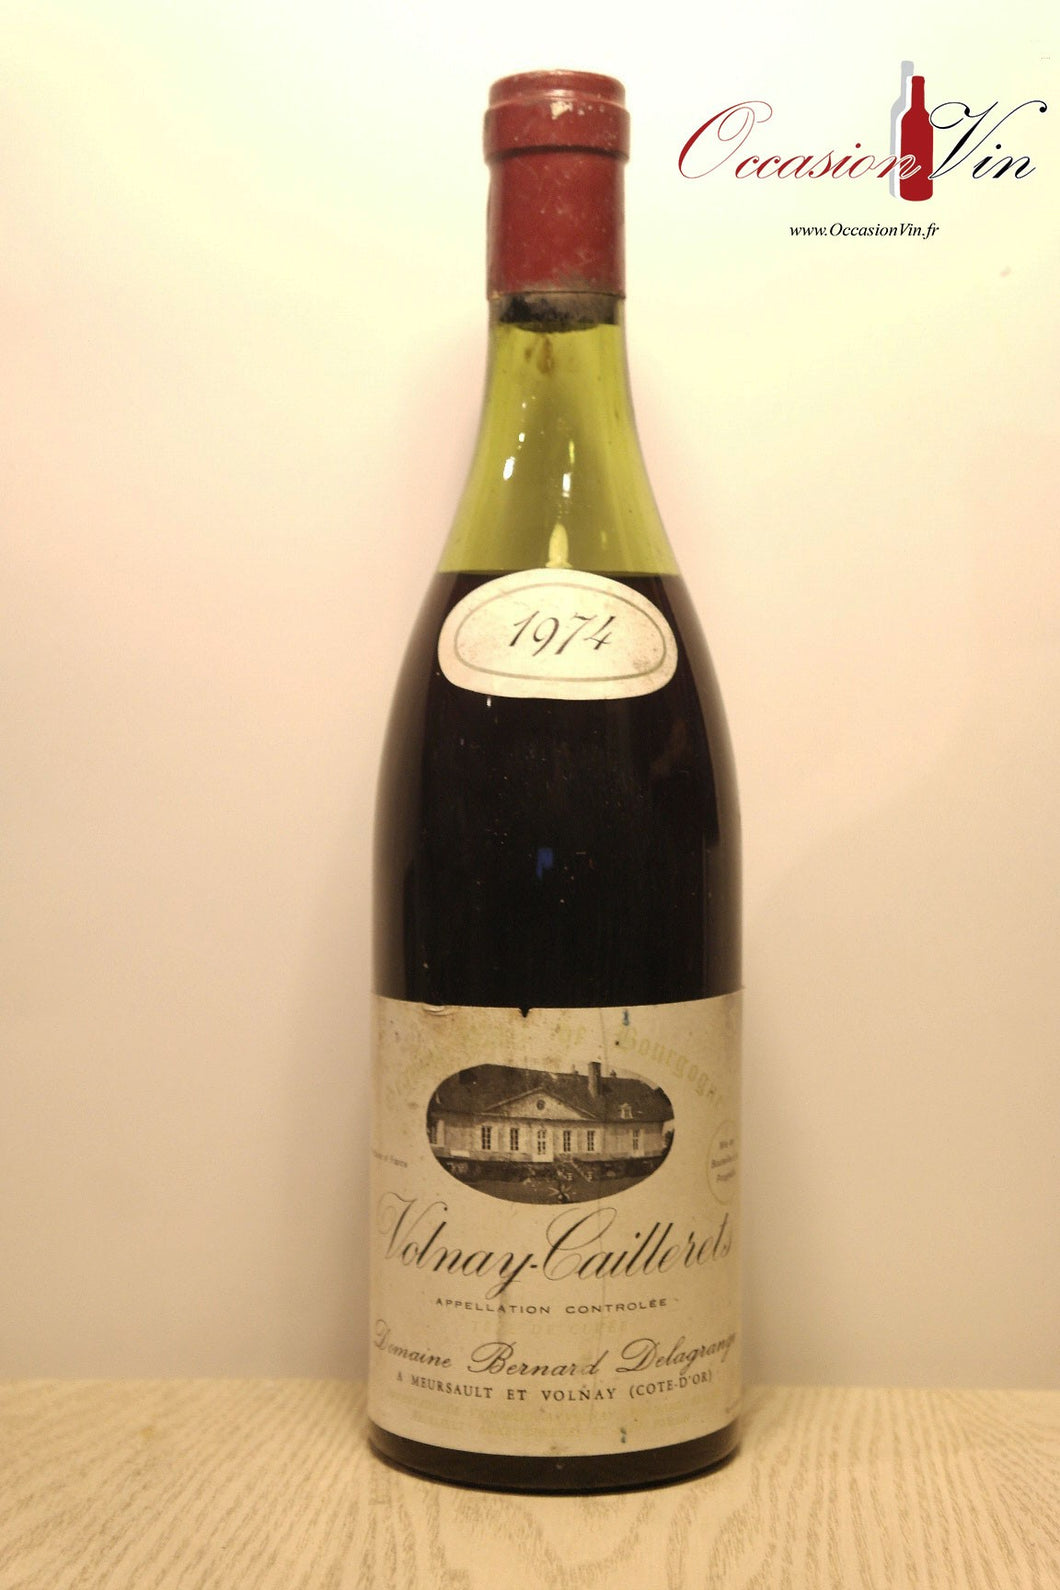 Volnay-Caillerets Vin 1974